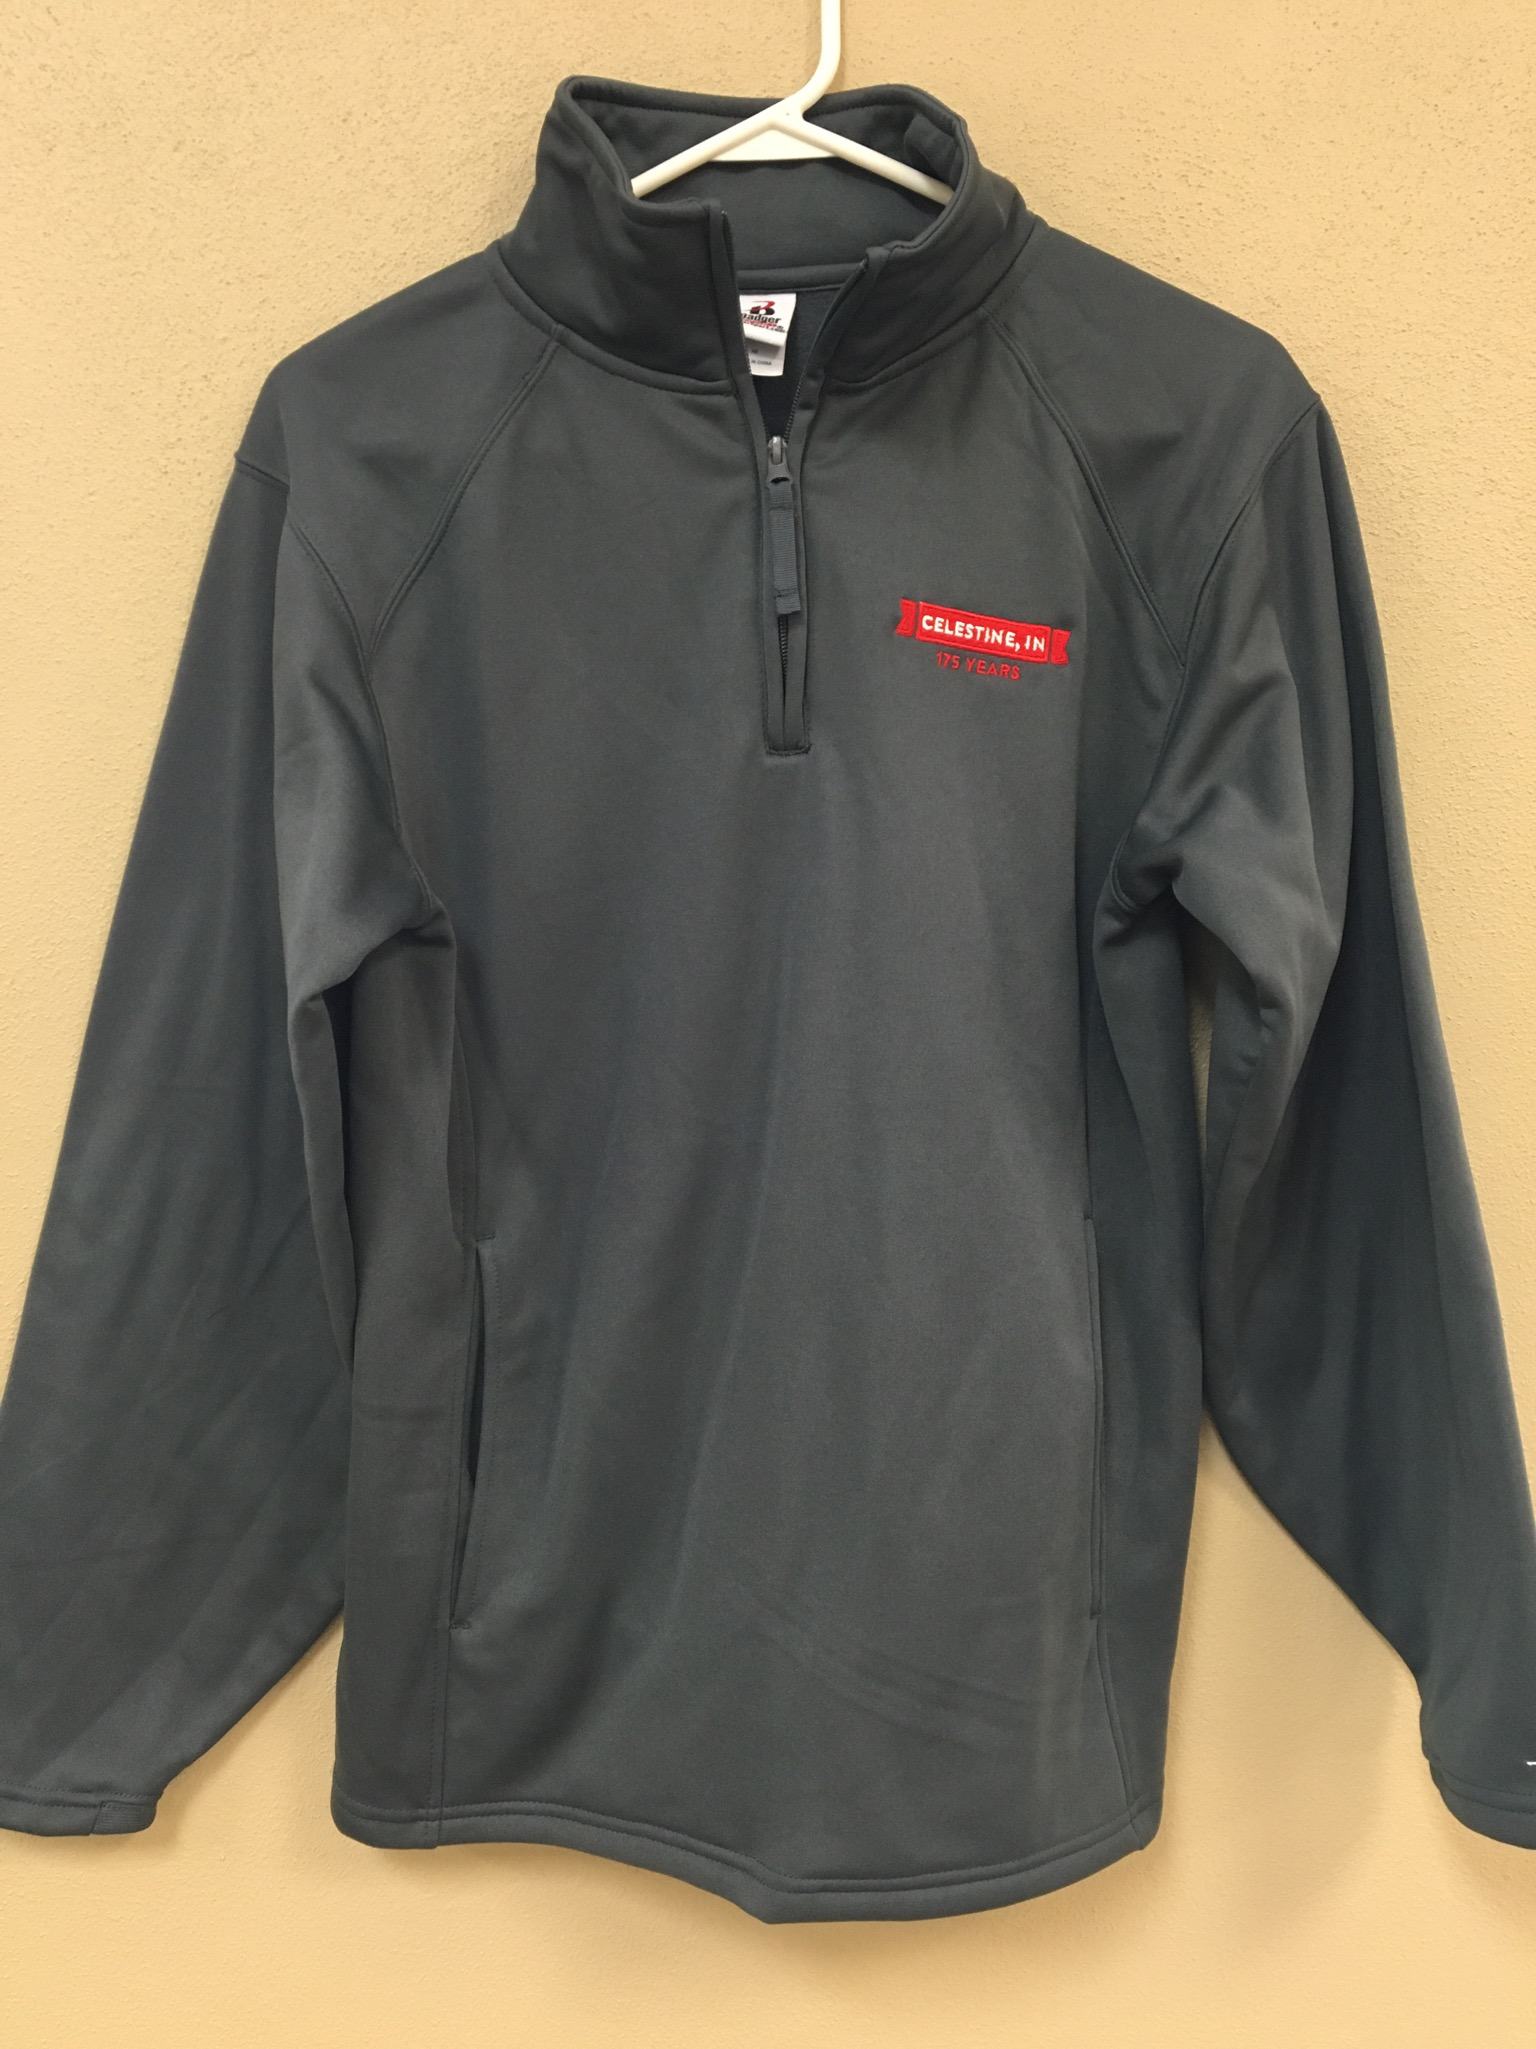 ¼ Zip Pullover Shirts - $30